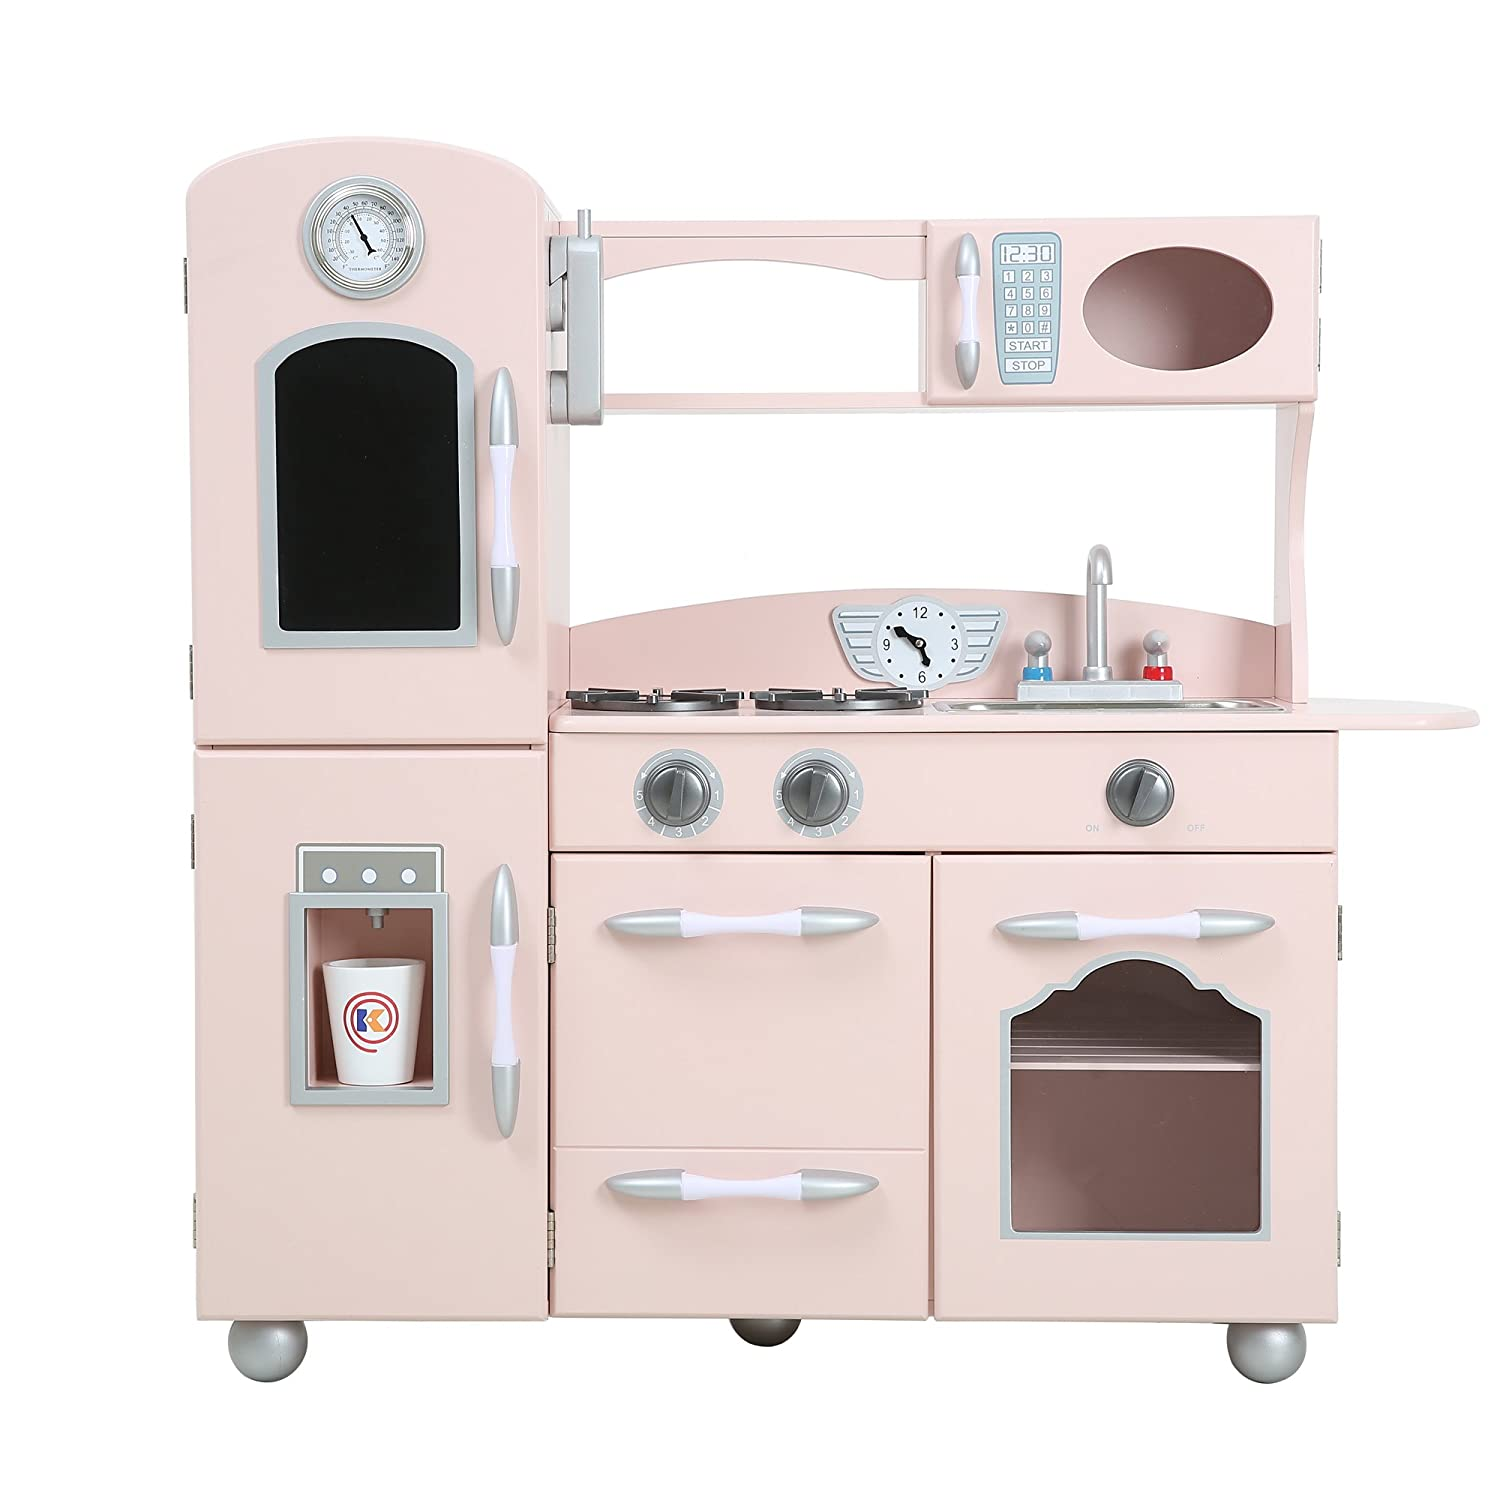 amazoncom teamson kids  retro wooden play kitchen with  - amazoncom teamson kids  retro wooden play kitchen with refrigeratorfreezer oven and dishwasher  pink ( pieces) toys  games